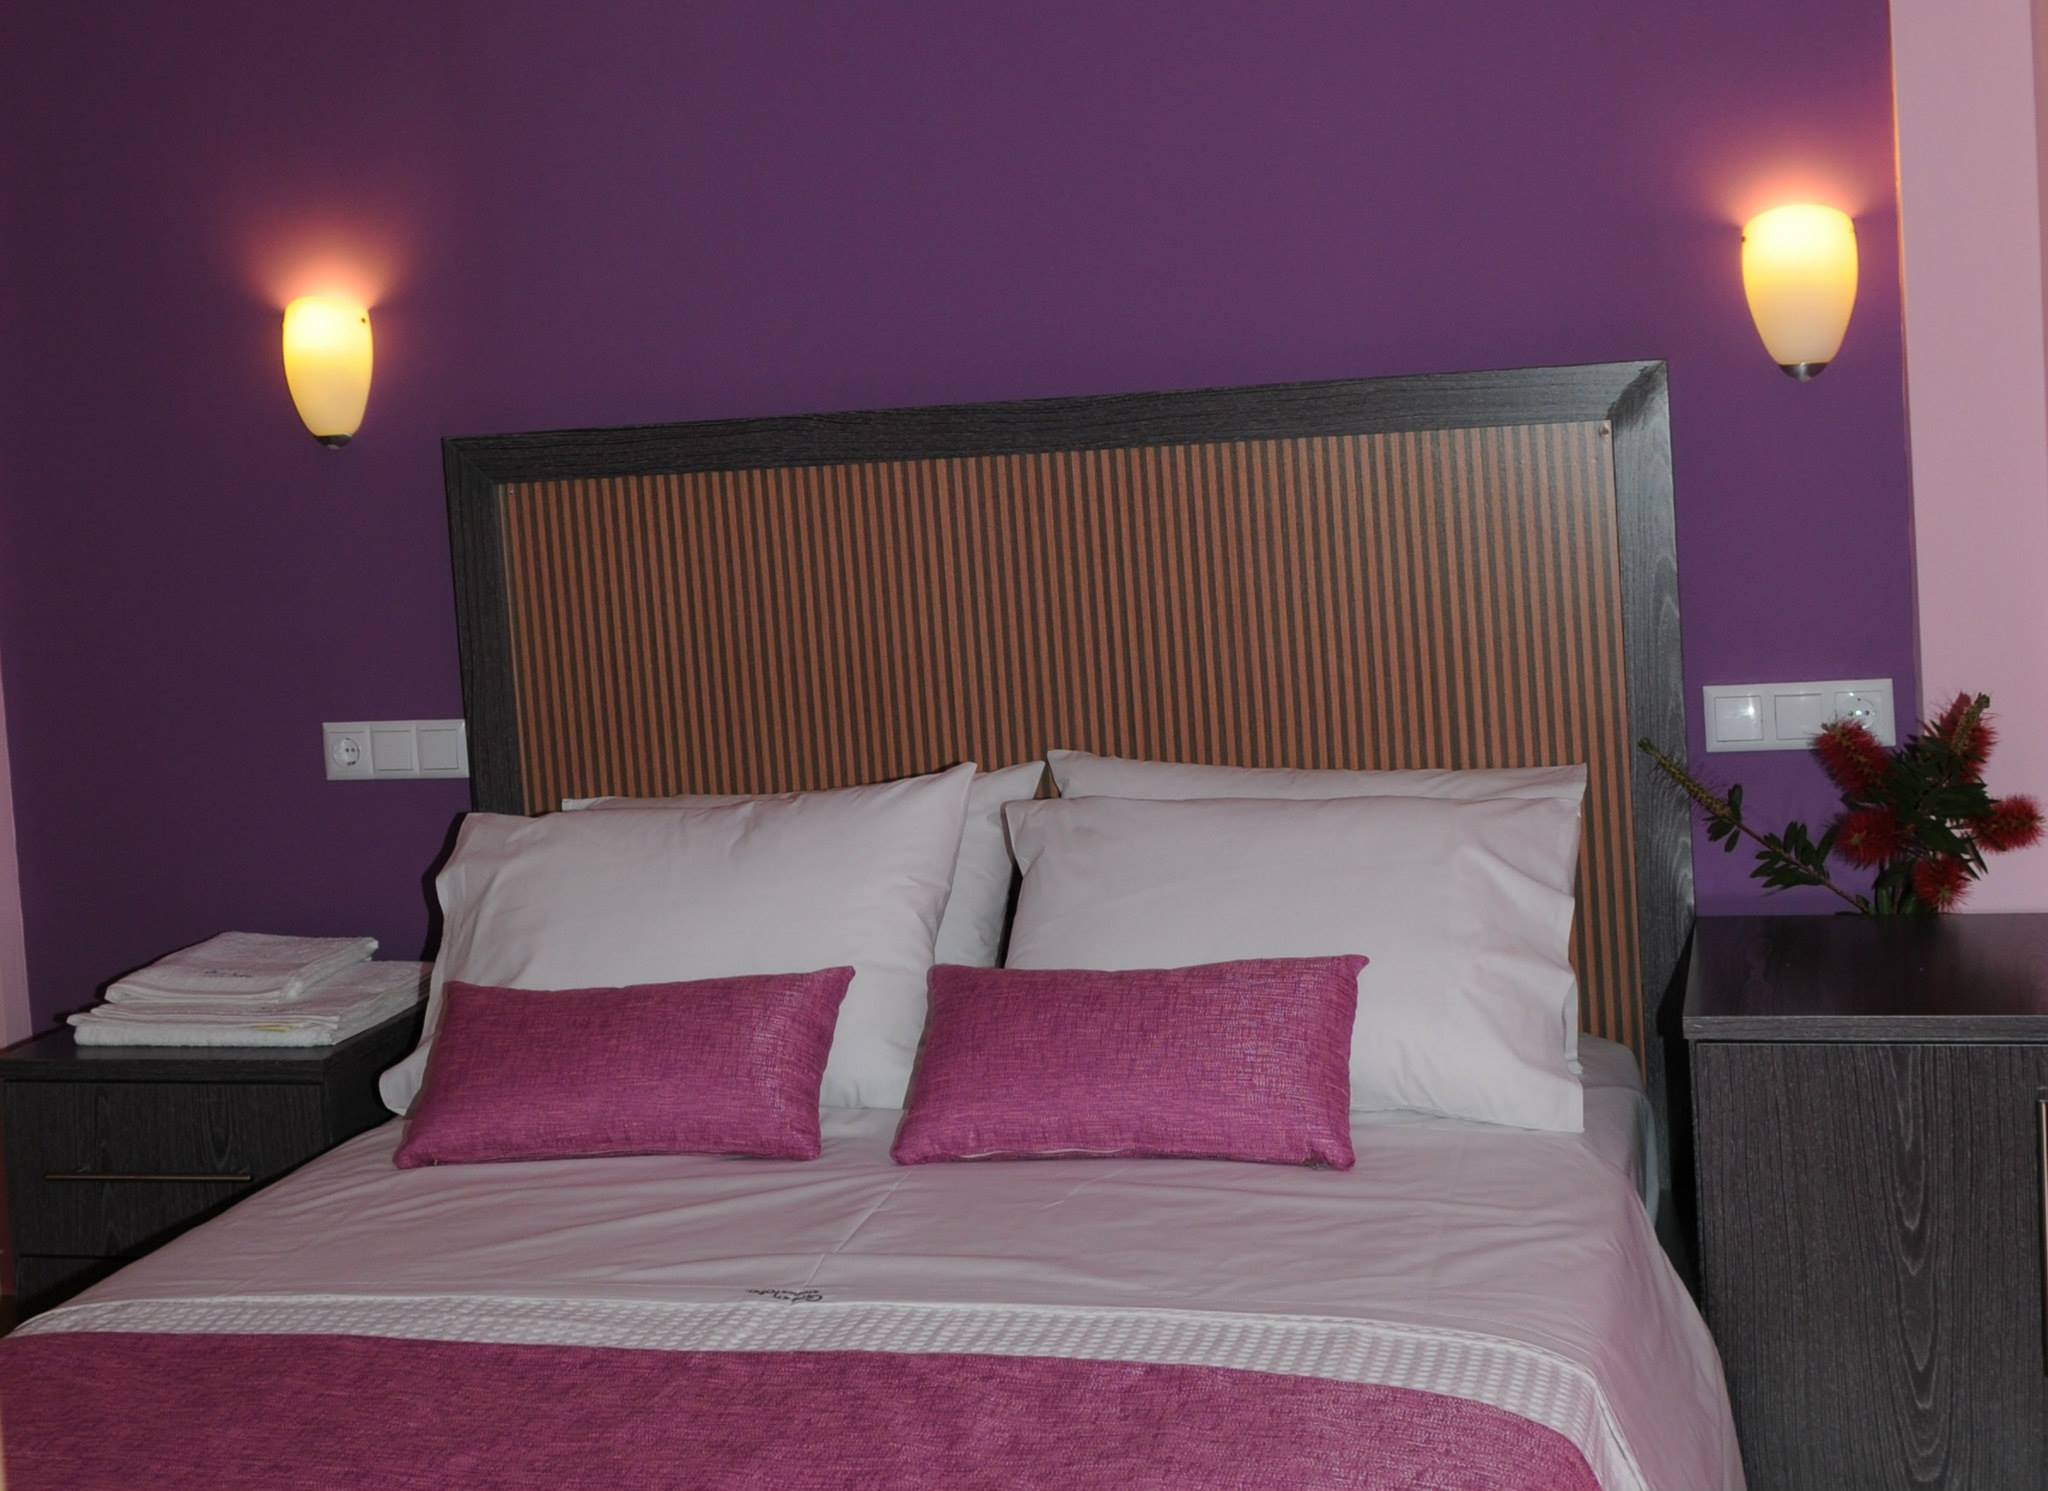 greenotel studios and apartmets sithonia room no. 2 (3)